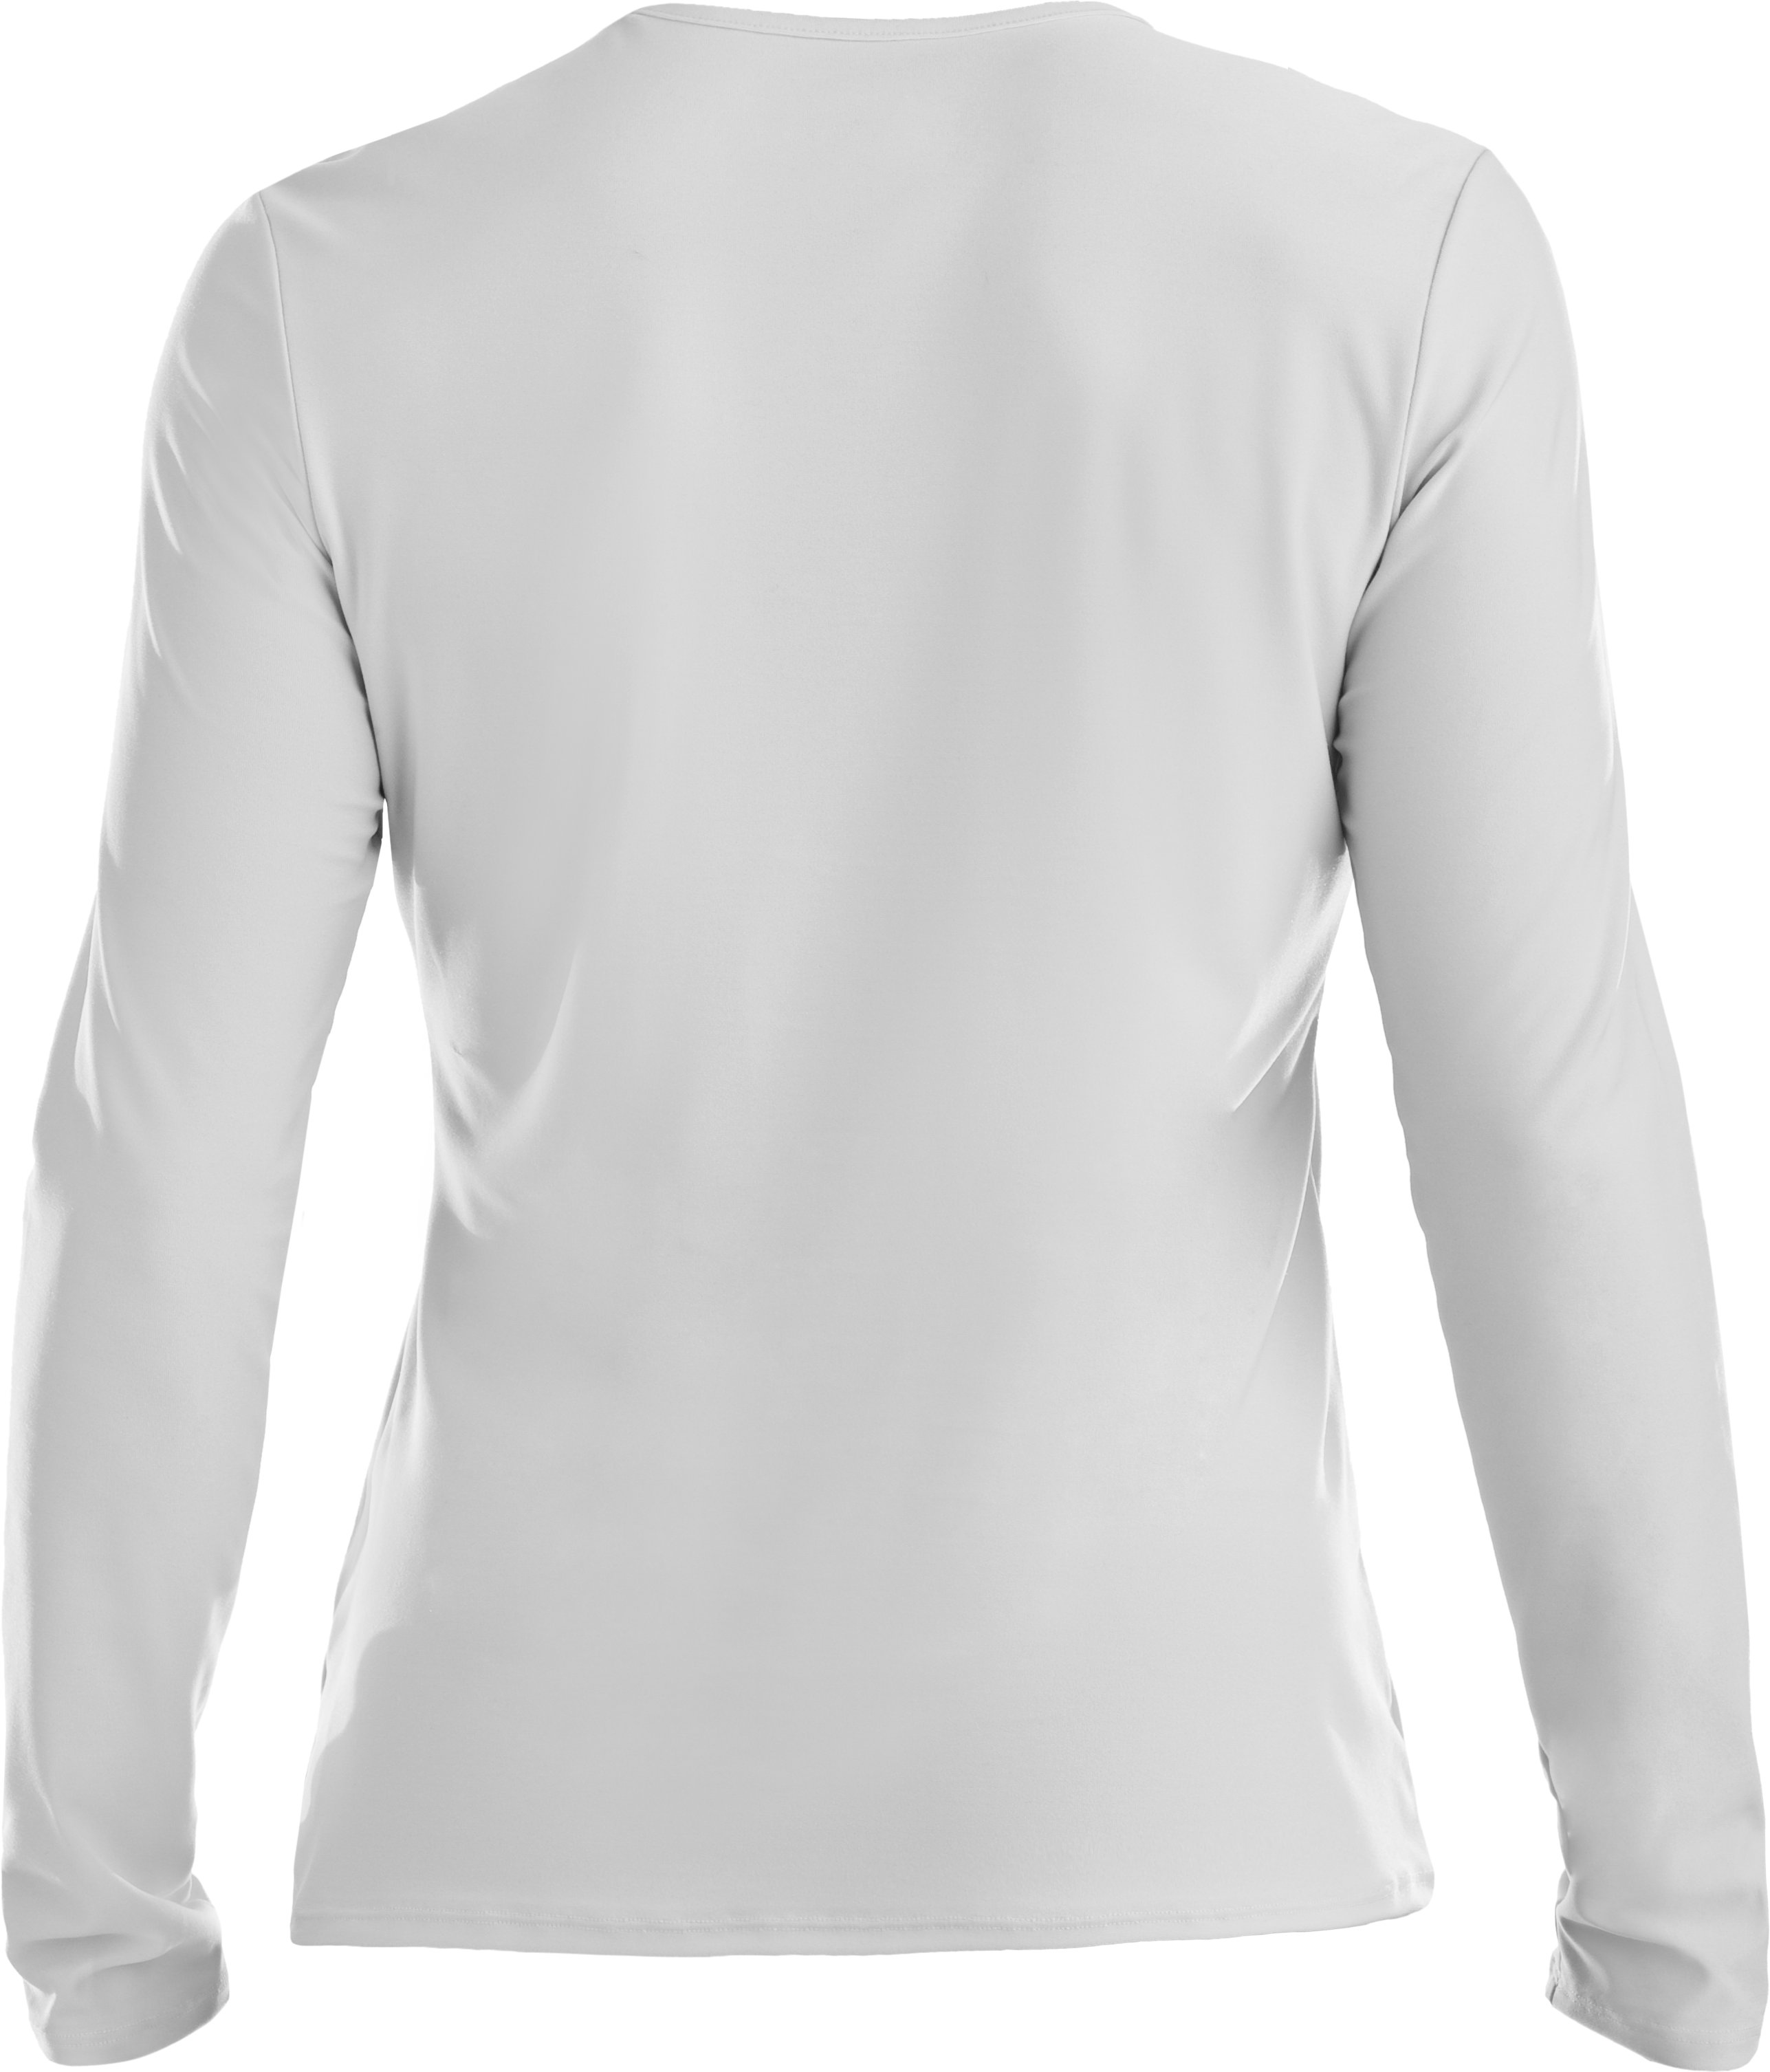 Women's Locker Long Sleeve T-Shirt, White